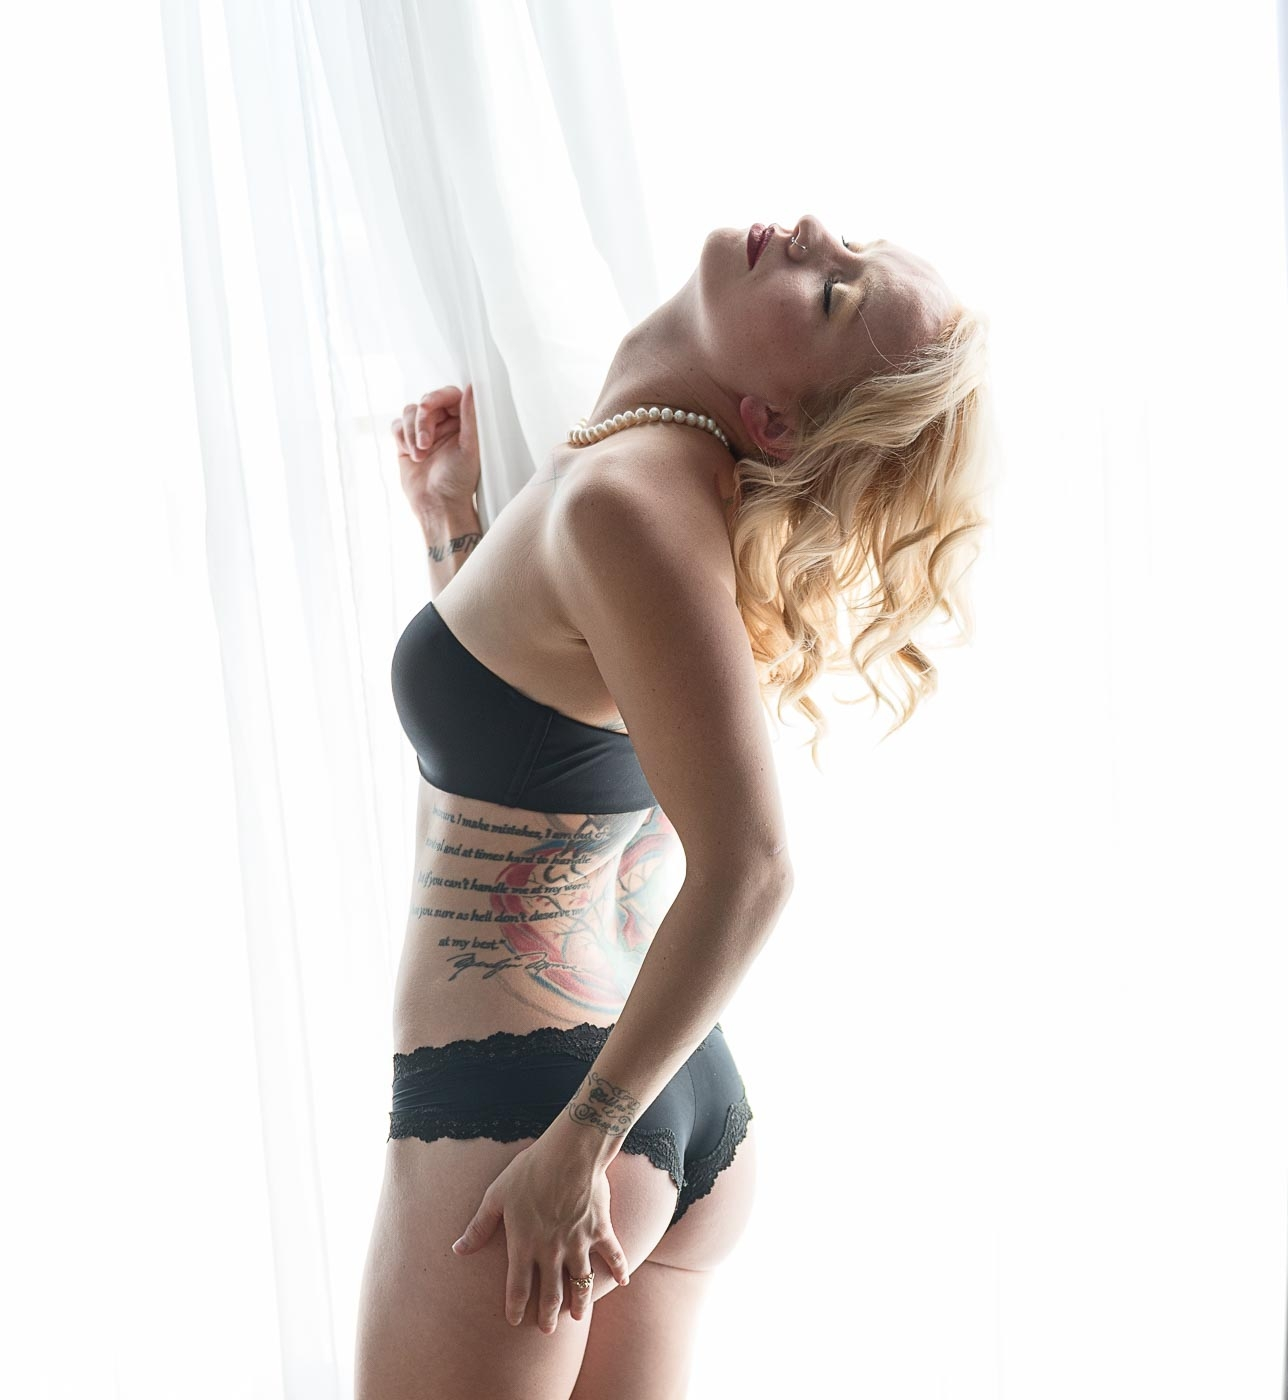 Houston Boudoir Photo at Heights Boudoir Session